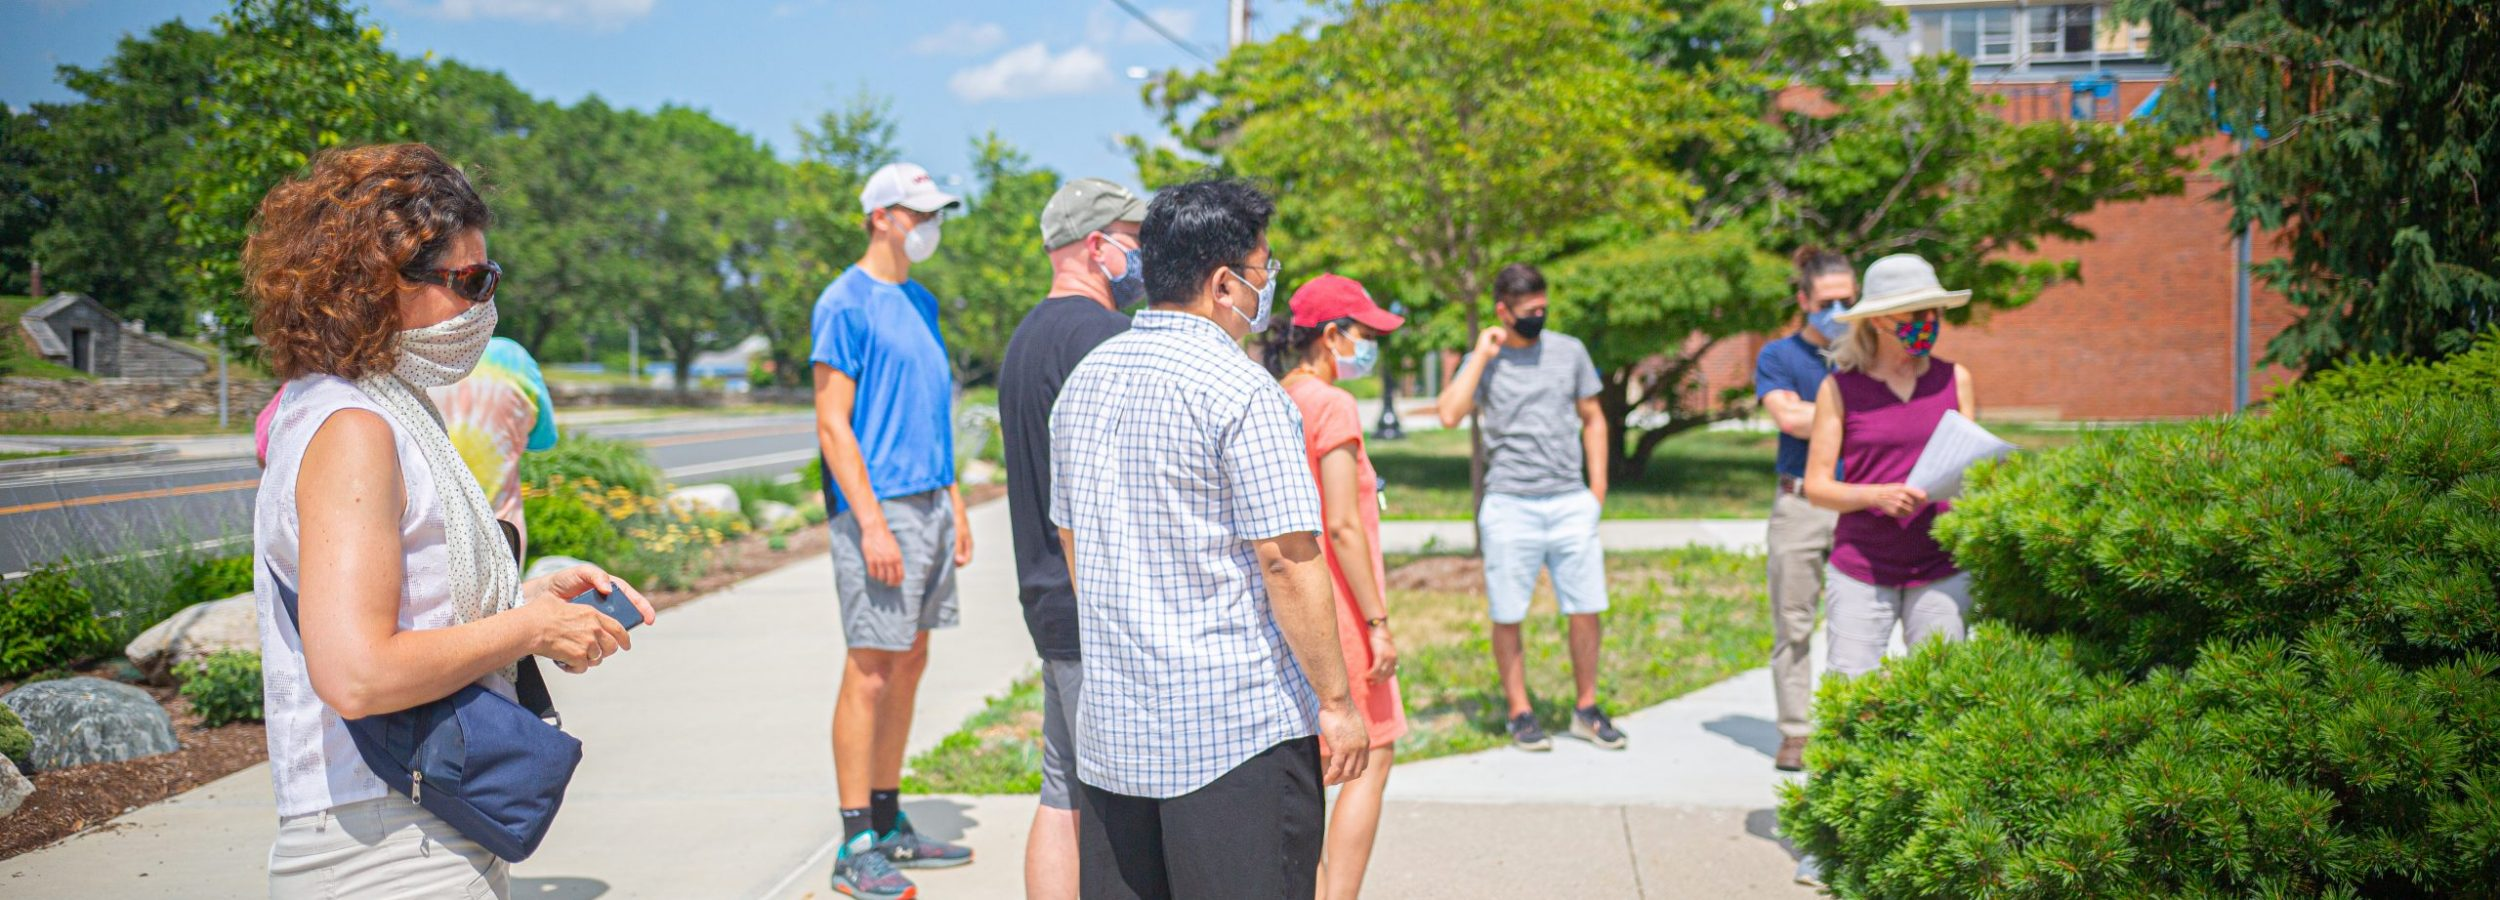 picture taken during in-person meeting, when the group walked around campus looking for inspiration.